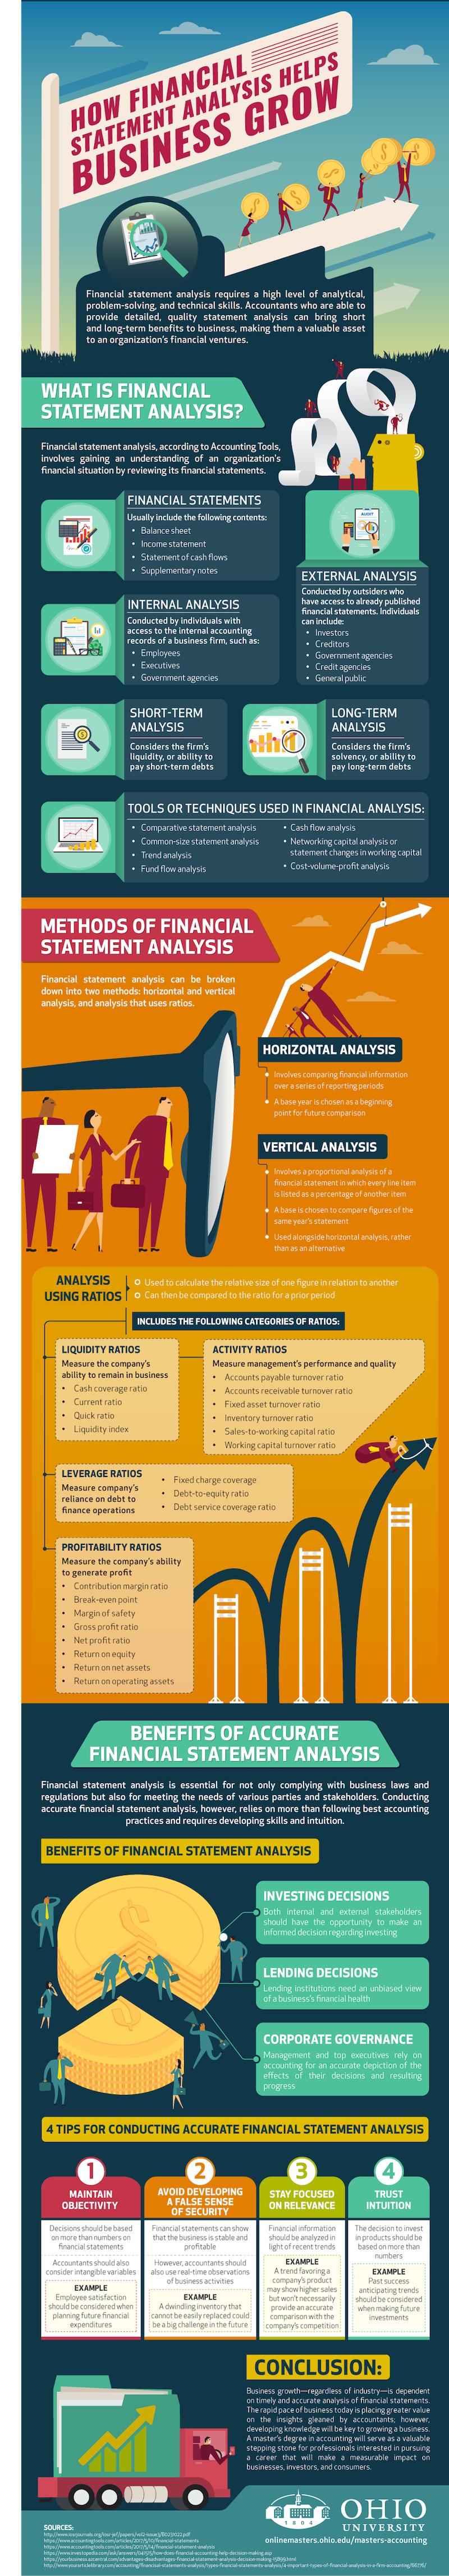 How Financial Statement Analysis Helps Business Grow infographic